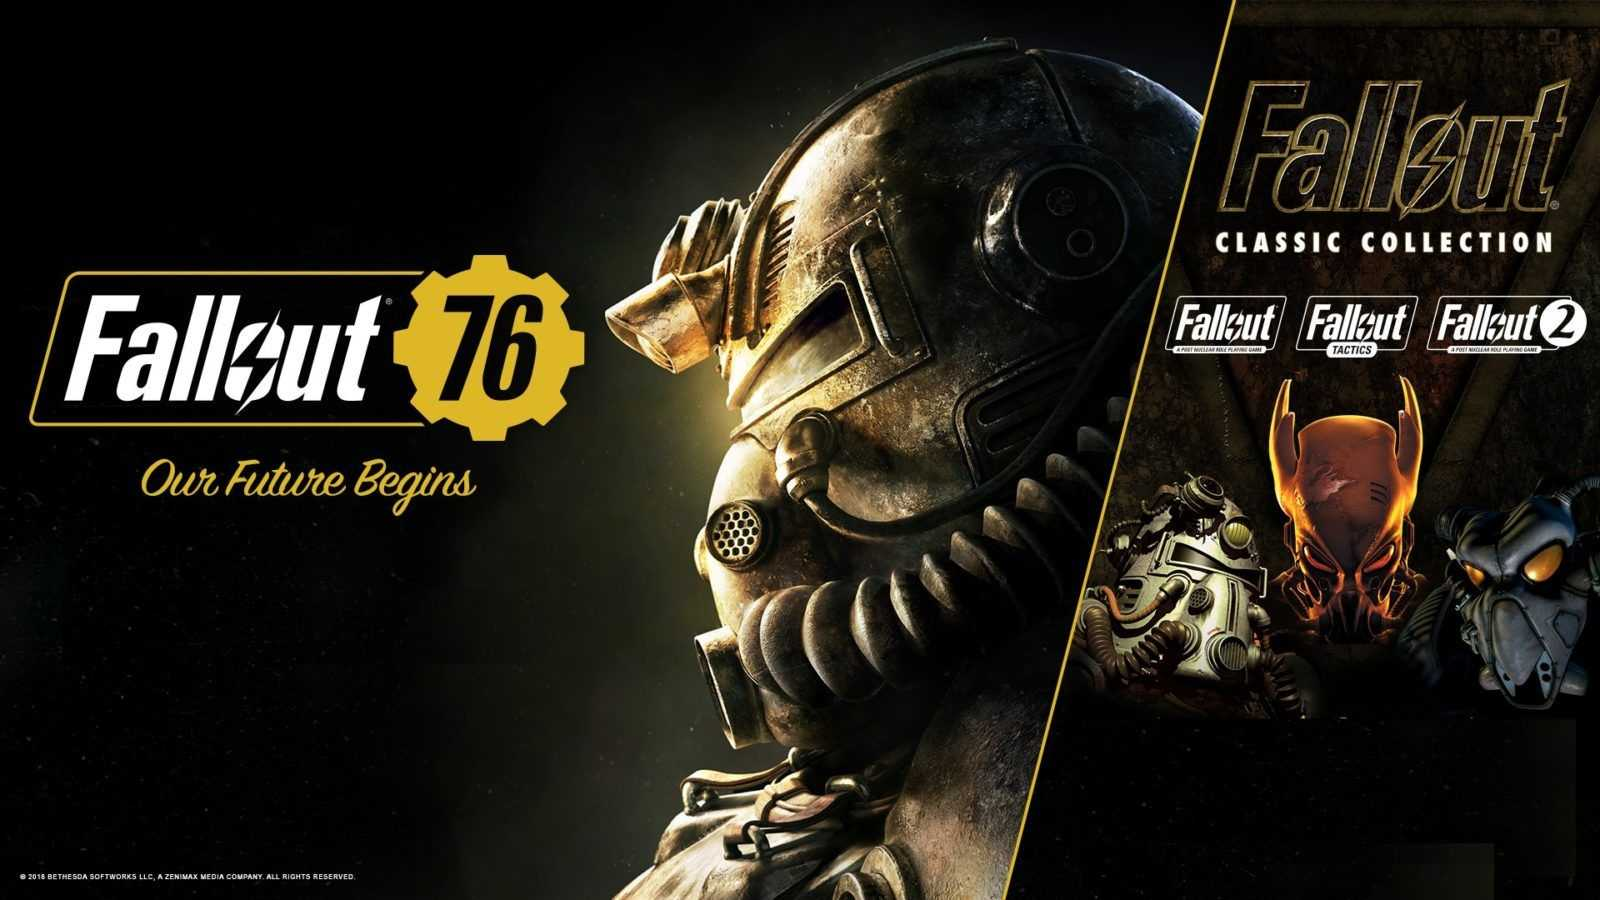 Bethesda regalerà Fallout Classic Collection ai possessori di Fallout 76